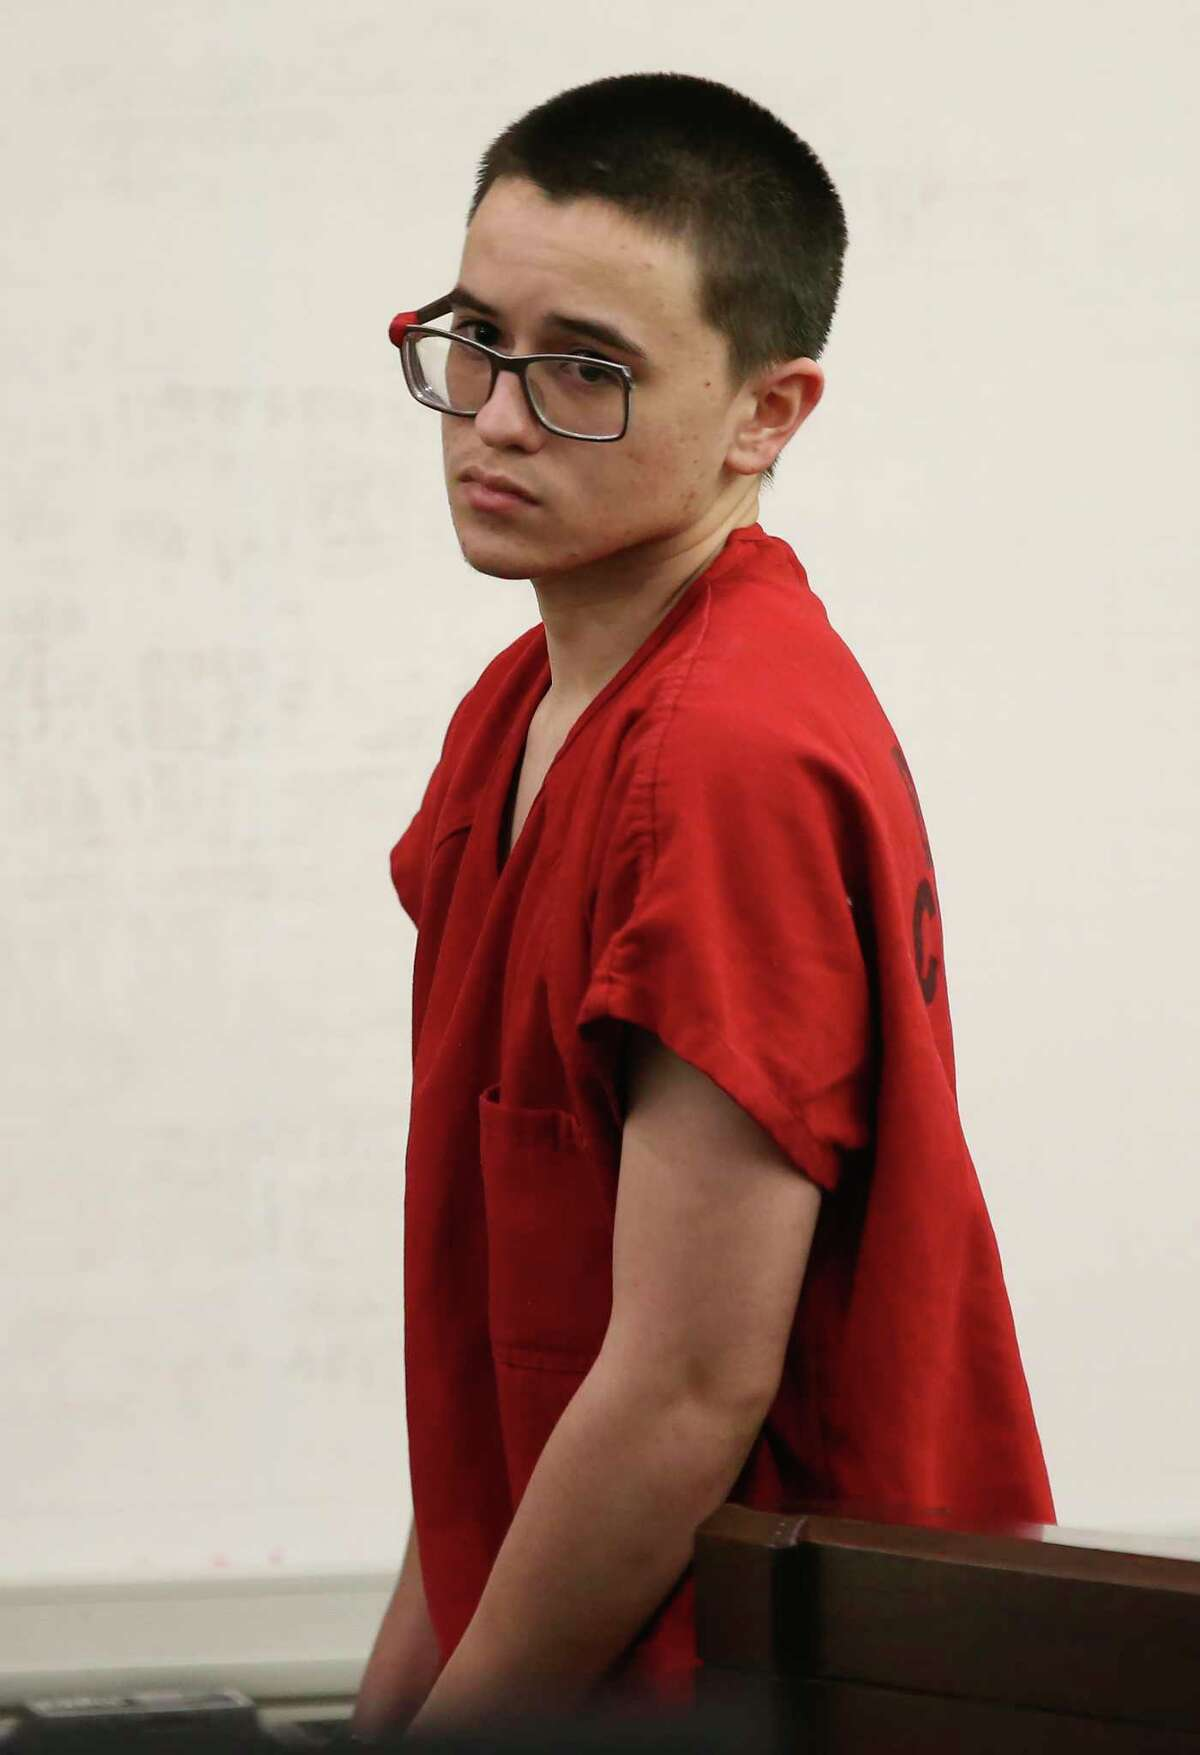 Matthew Dempsey, 18, has agreed to plead guilty to the killing of his mother, Mary Helen Dempsey.